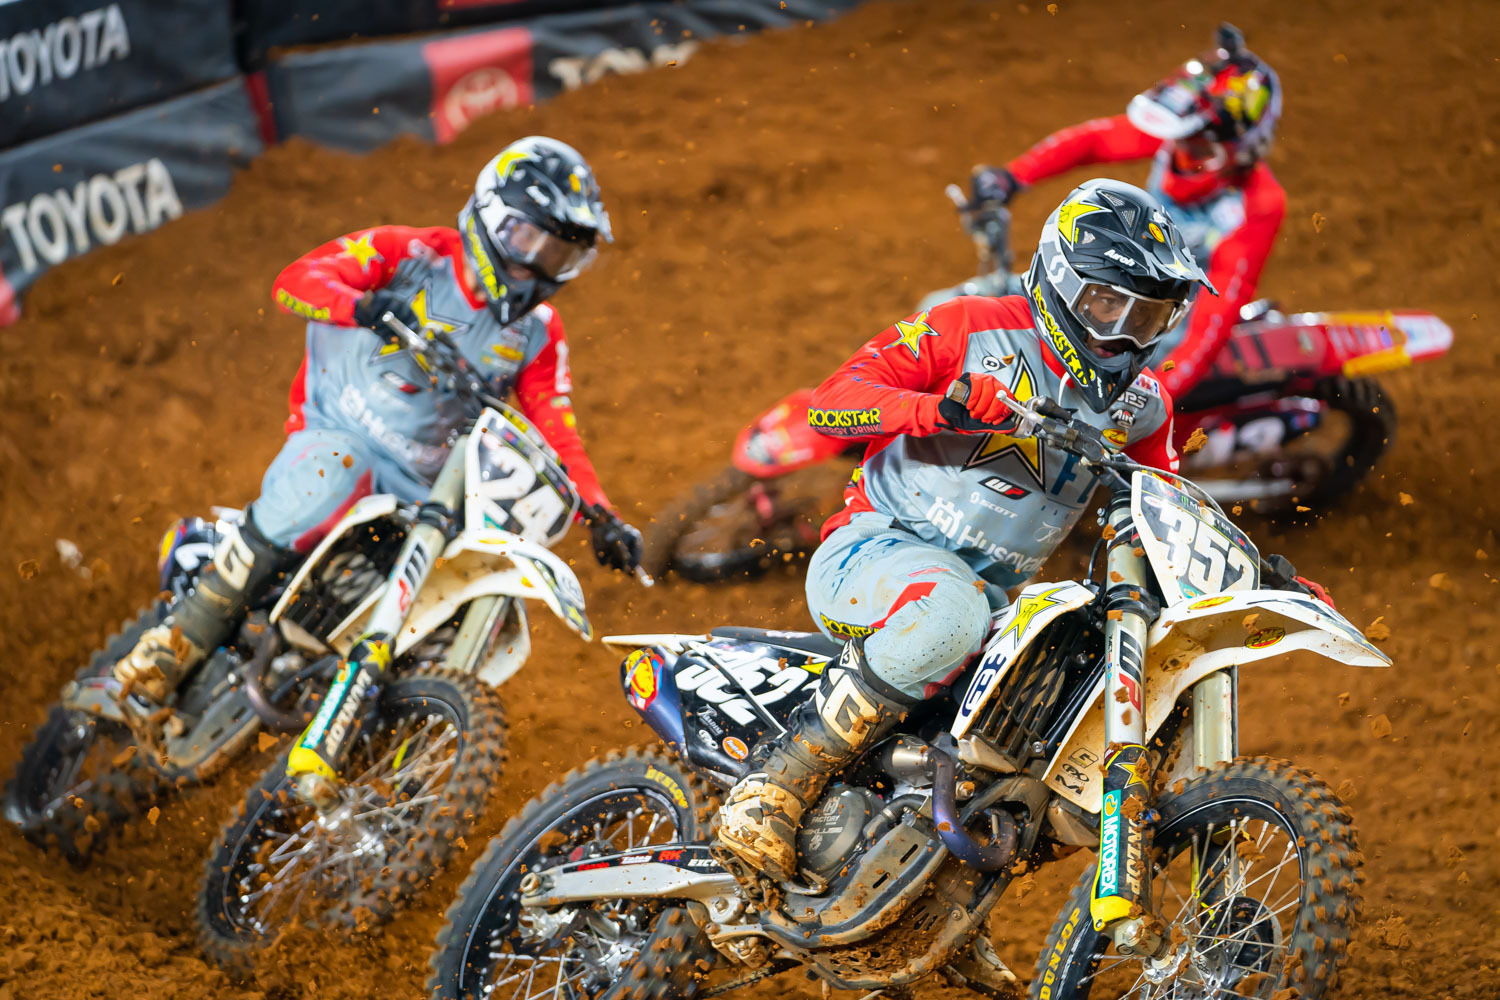 2020-ARLINGTON-SUPERCROSS_KICKSTART_0074